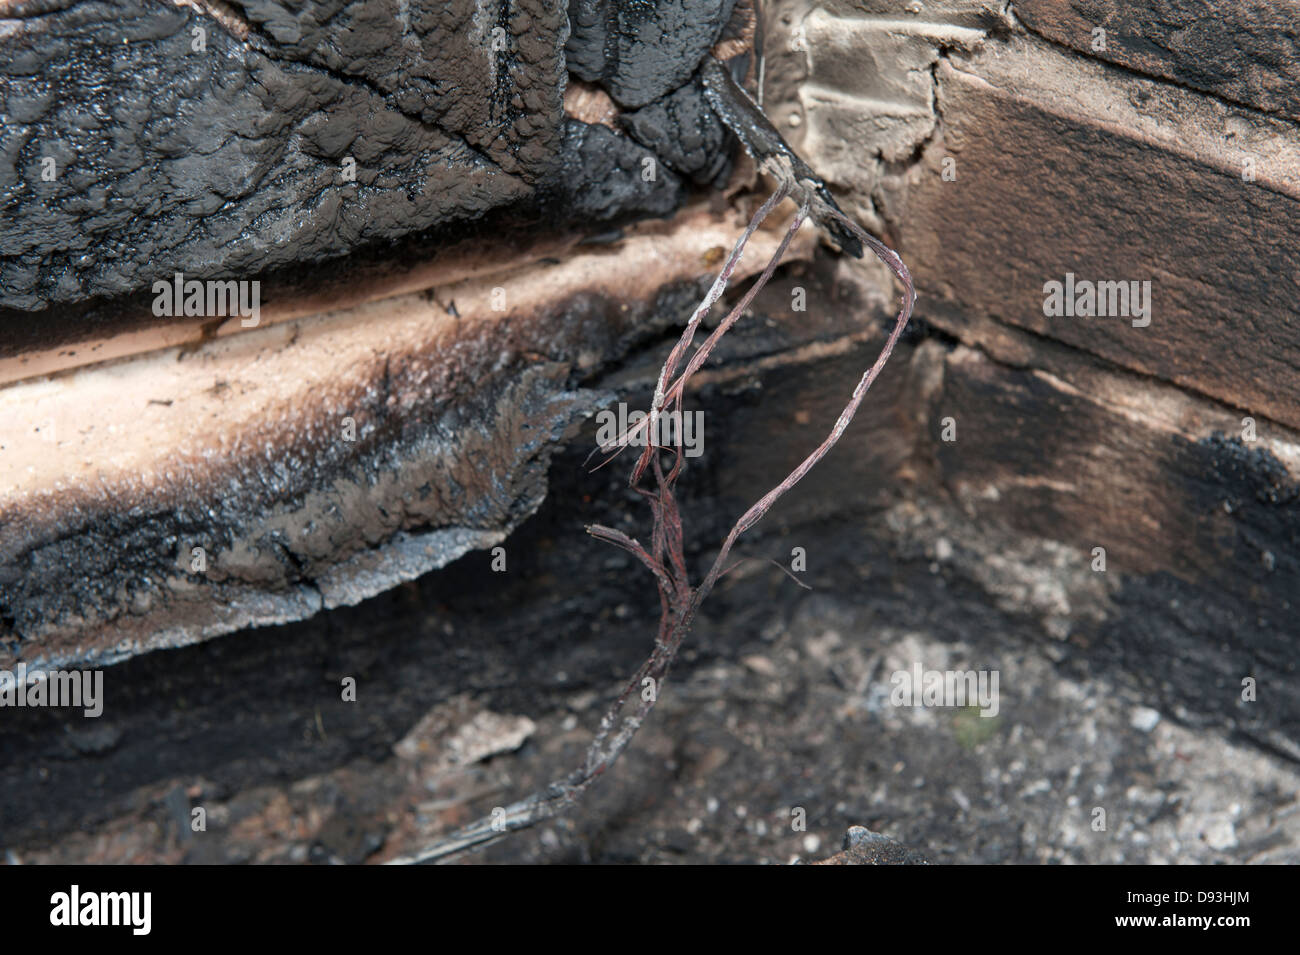 Burnt Electrical Wire Stock Photos House Wiring Strategy Fire Faulty Cable Rodent Chewed Through Accidental Image